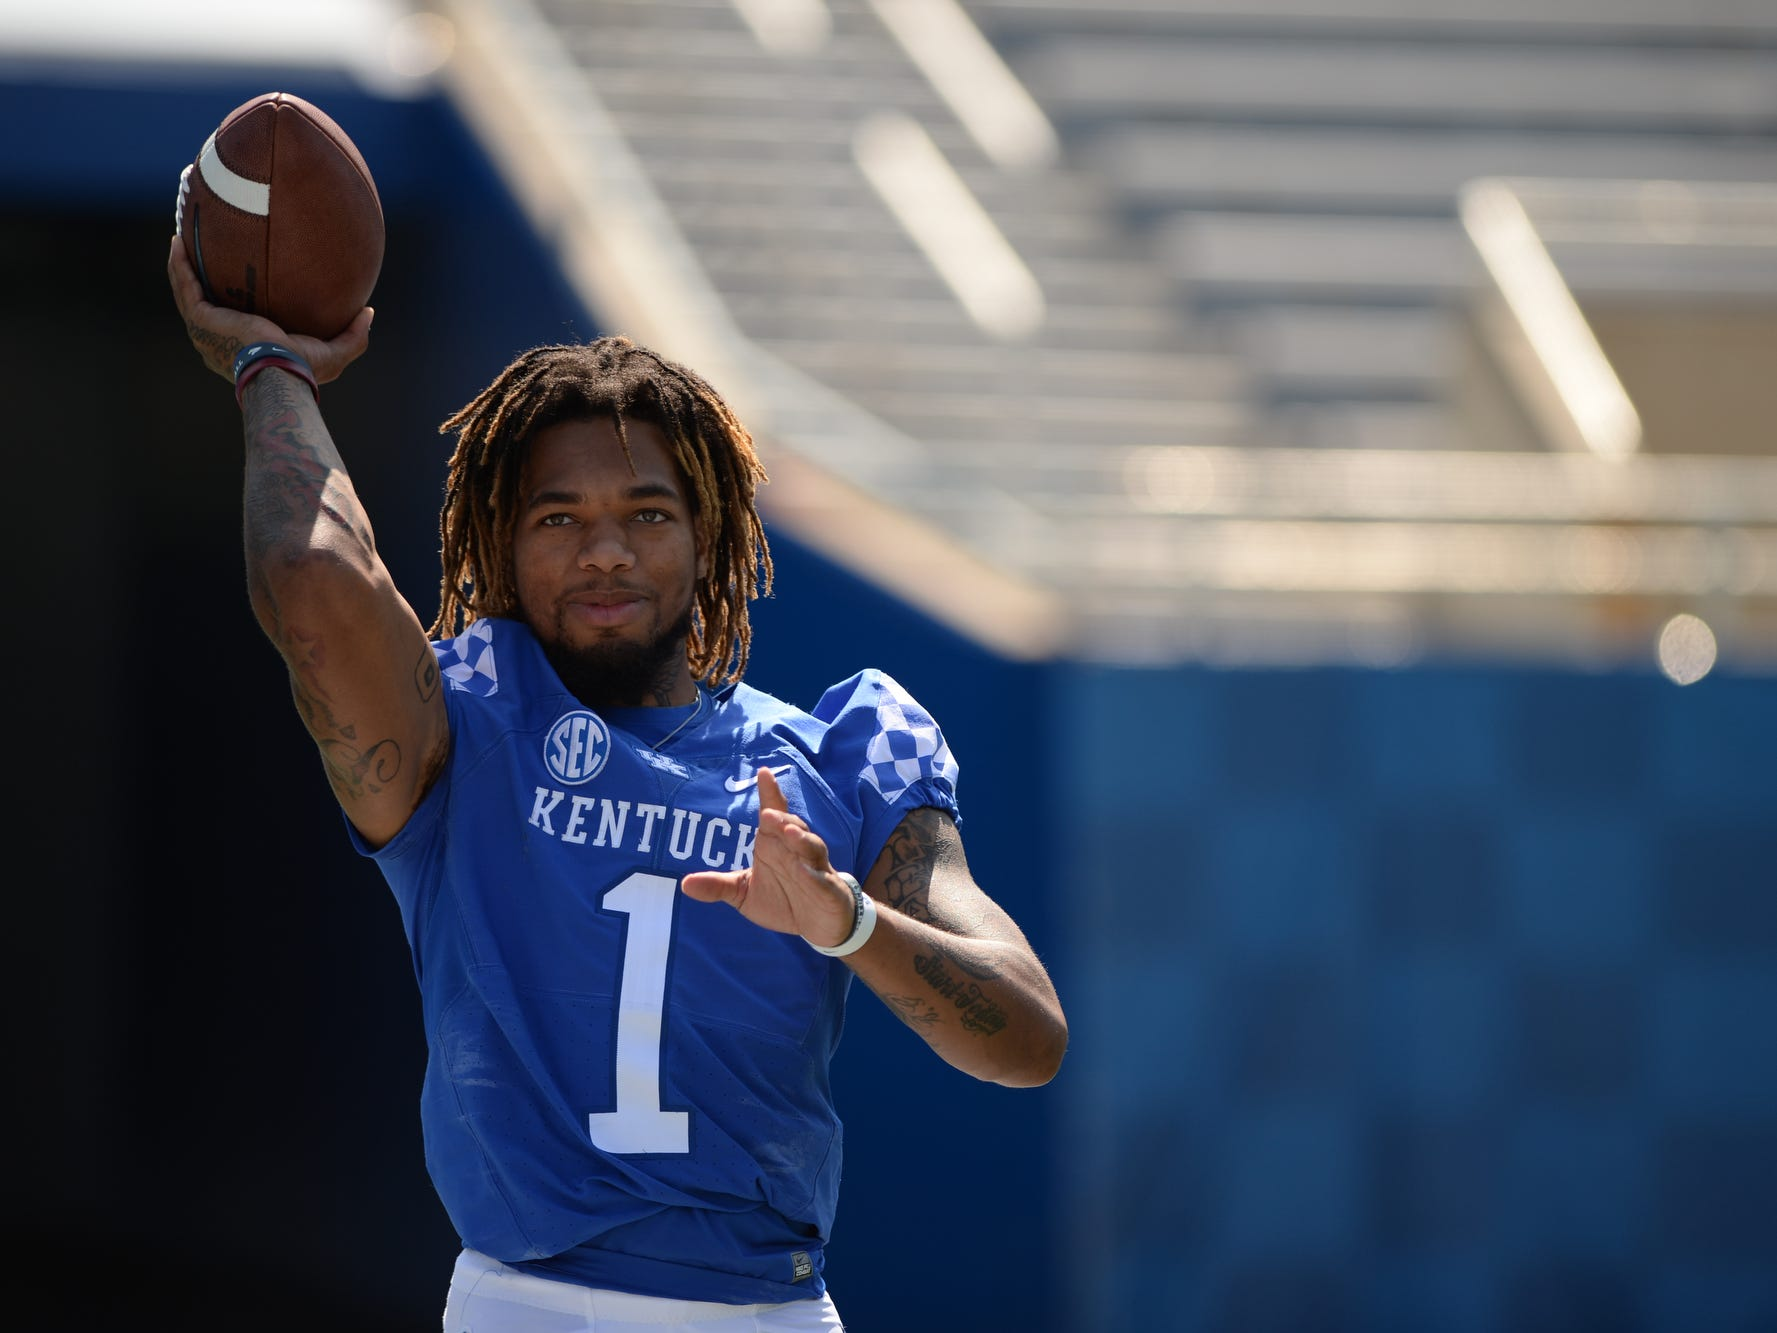 WR Lynn Bowden, Jr. plays catch during the UK football media day at Kroger Filed in Lexington, Kentucky on Friday, August 3, 2018.